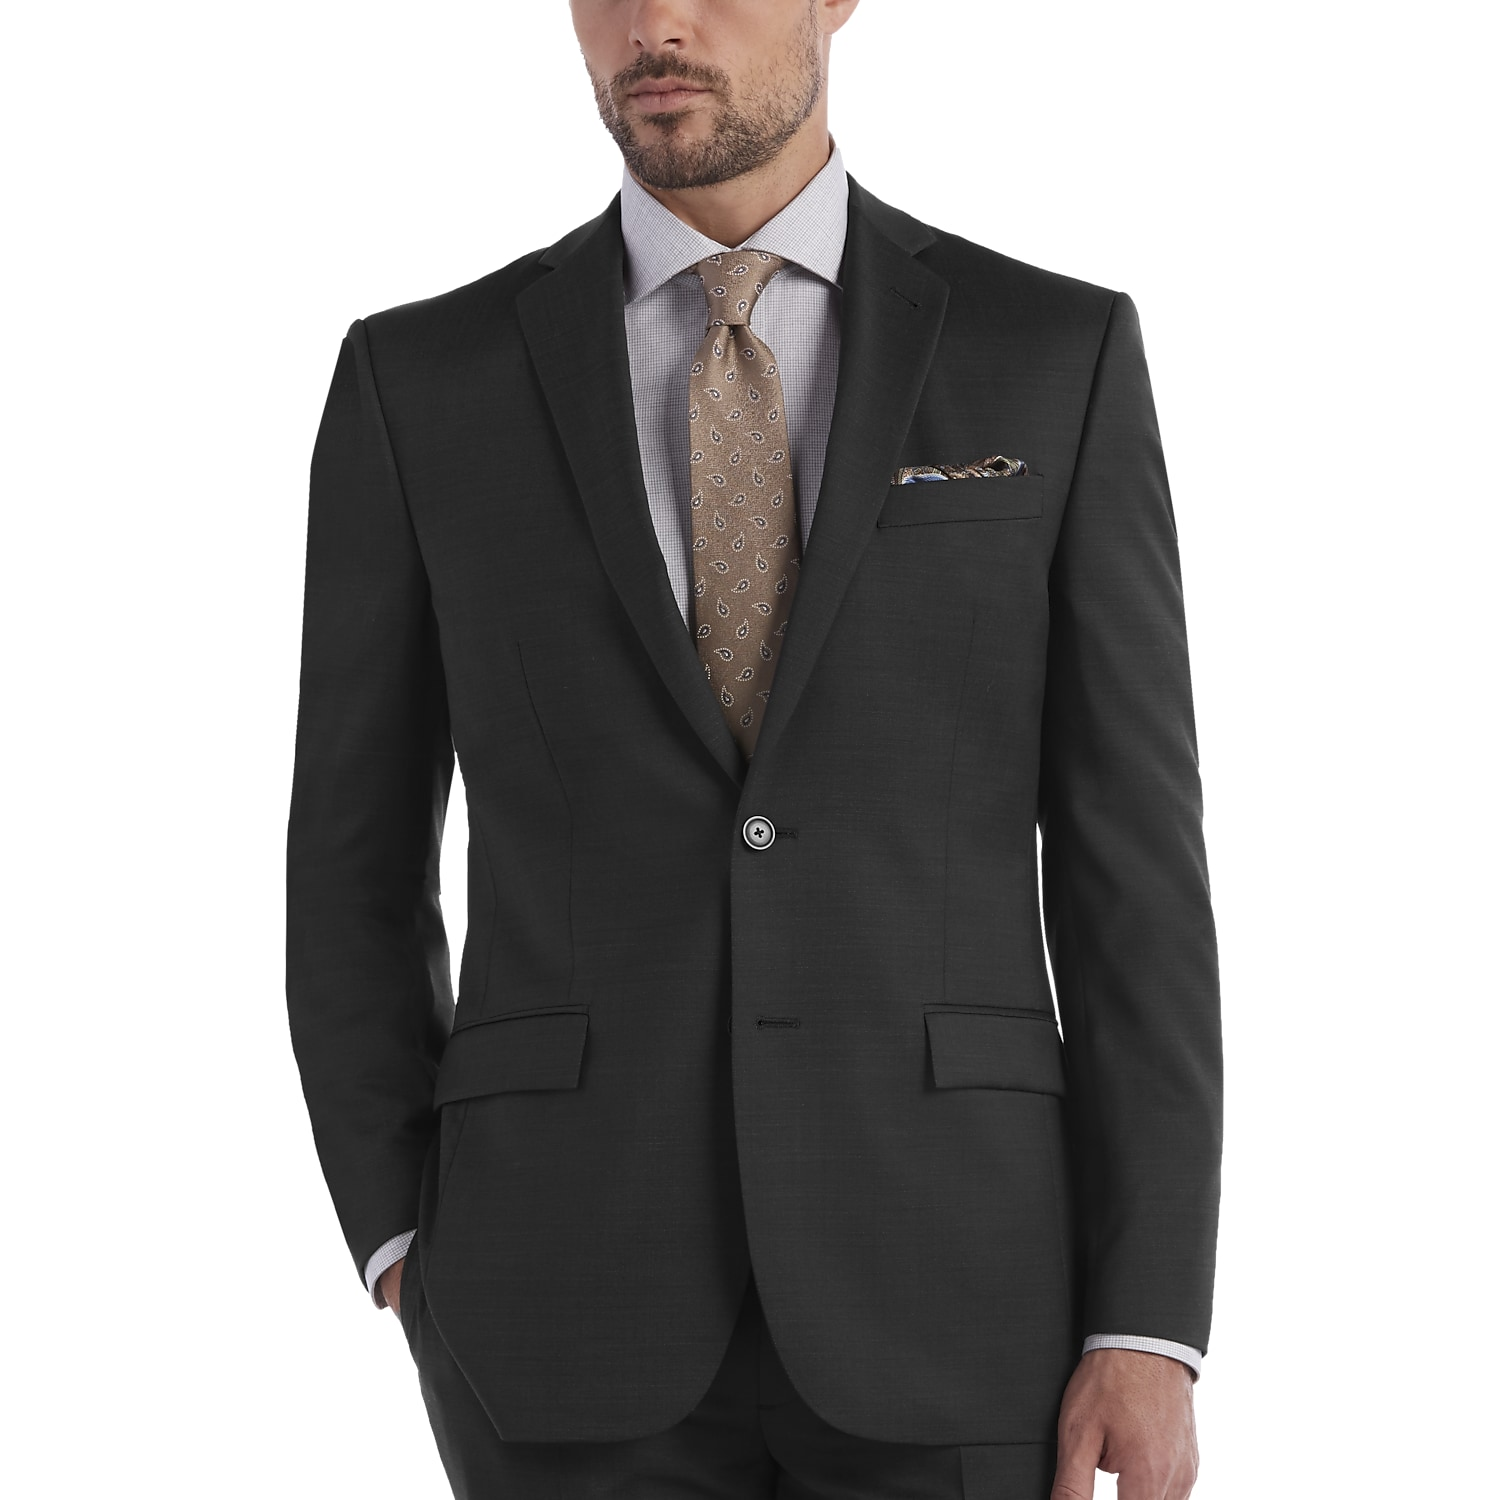 JOE Joseph Abboud Charcoal Gray Tic Slim Fit Survival Suit - Men's ...